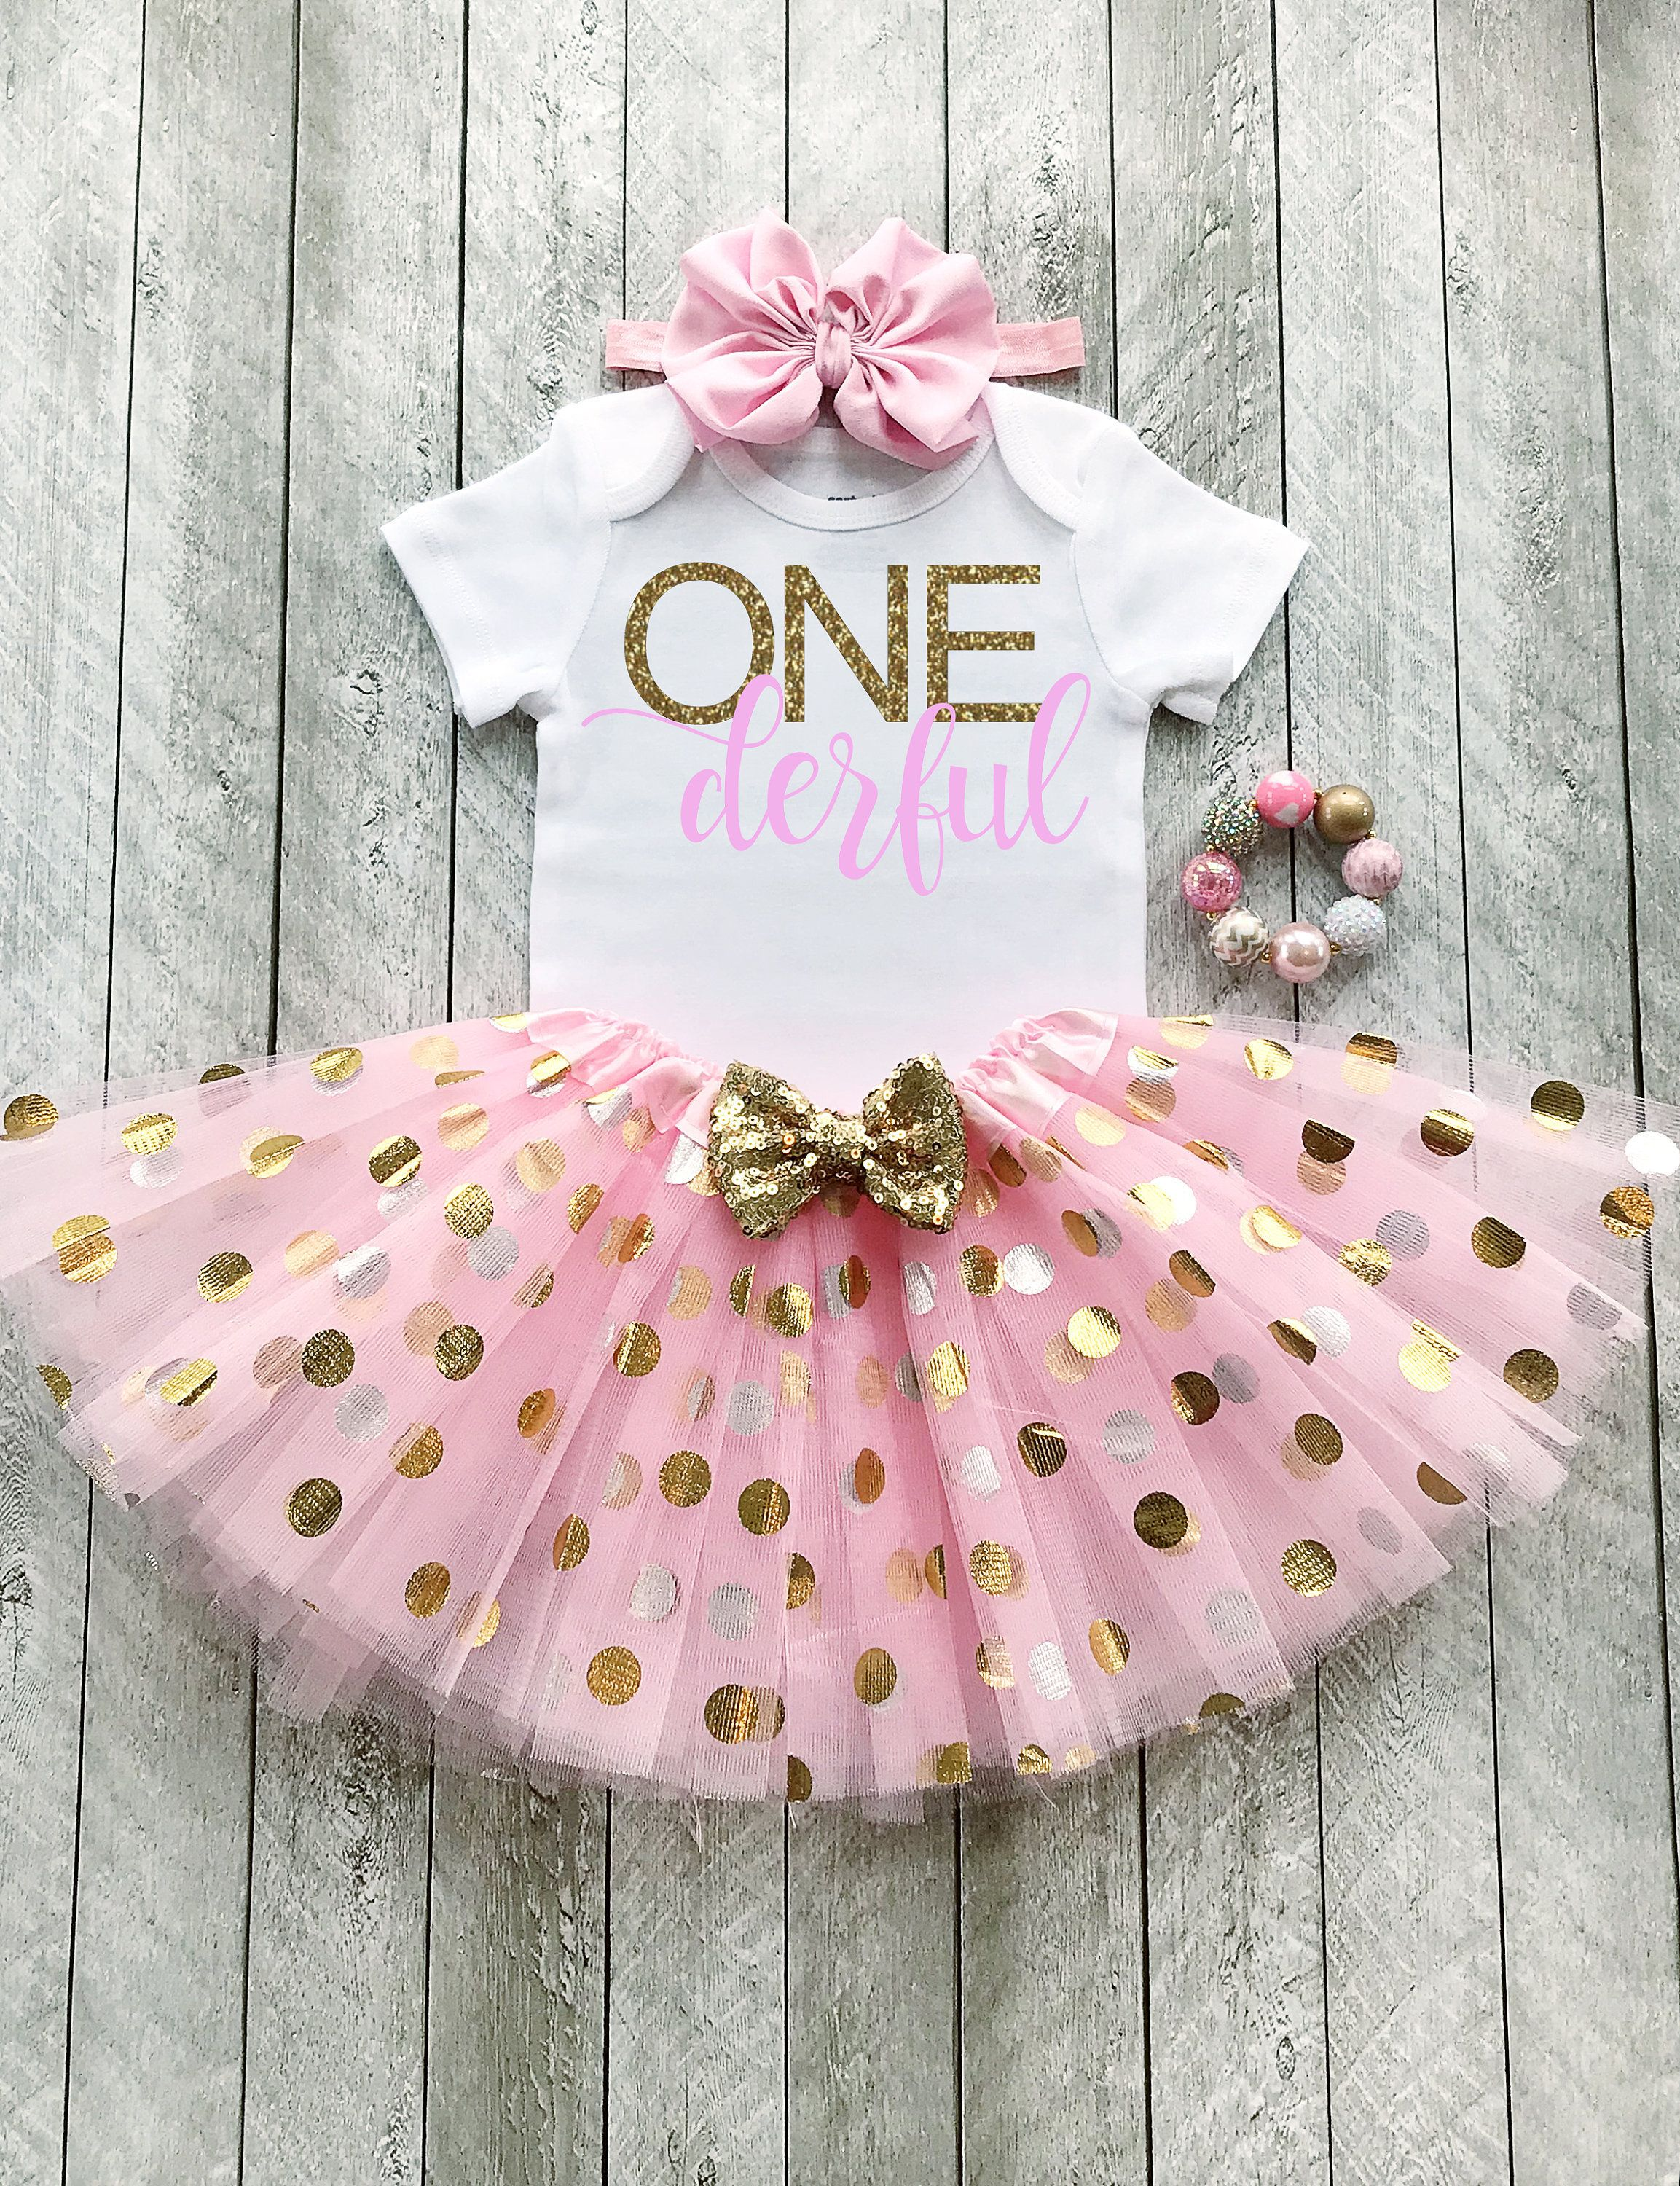 Onederful birthday One year old girl birthday outfit 7  Etsy